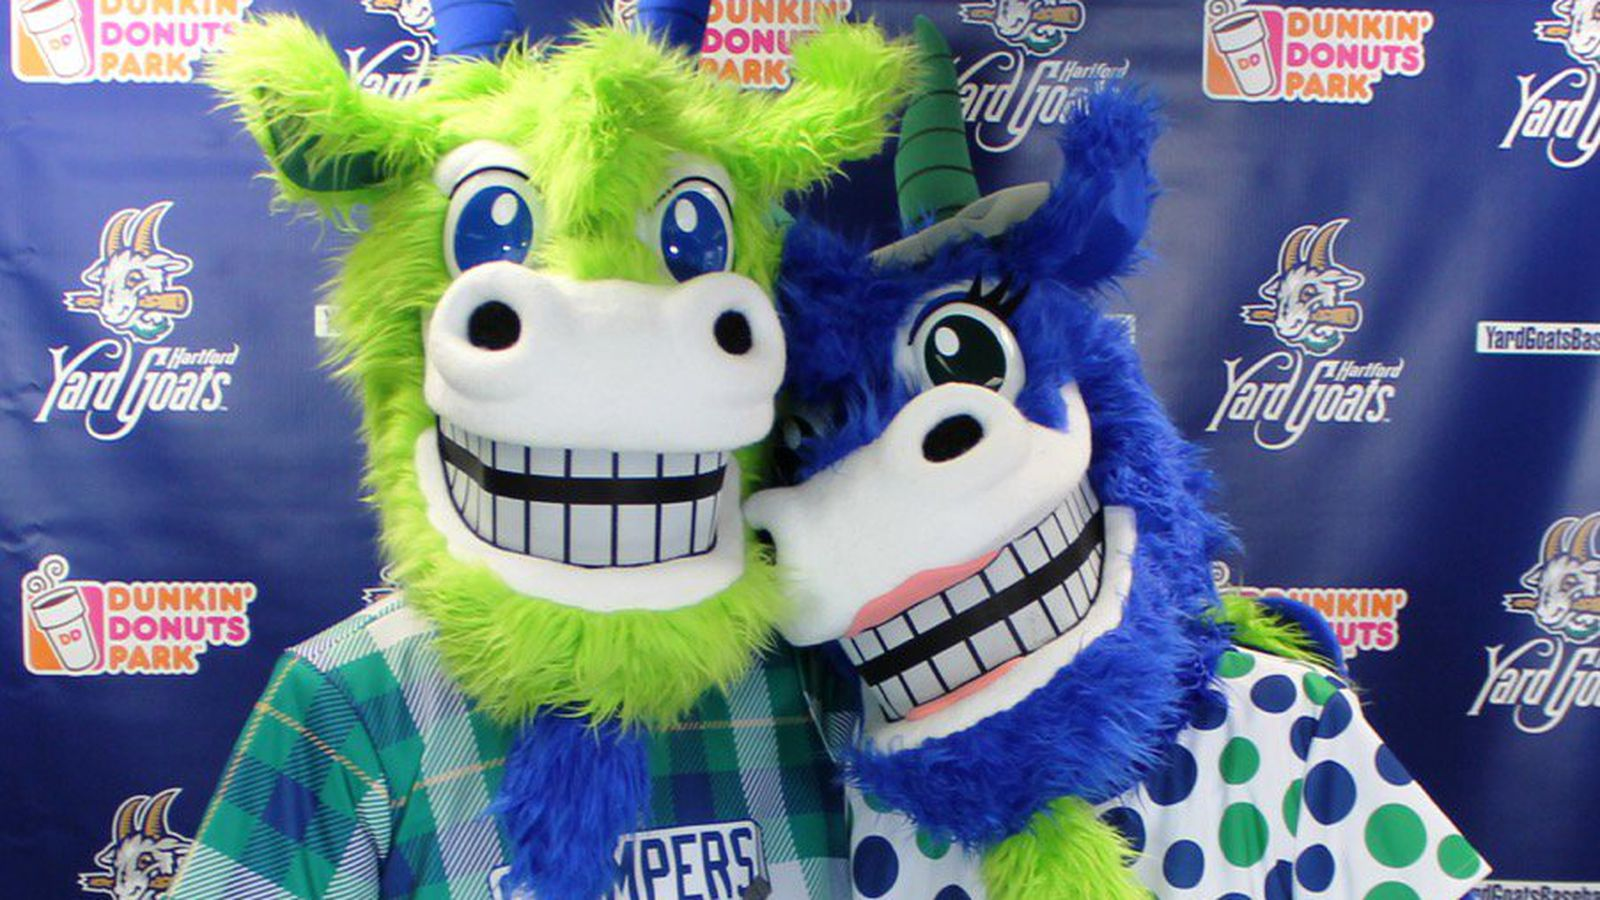 The Hartford Yard Goats Have Terrifying New Mascots And It